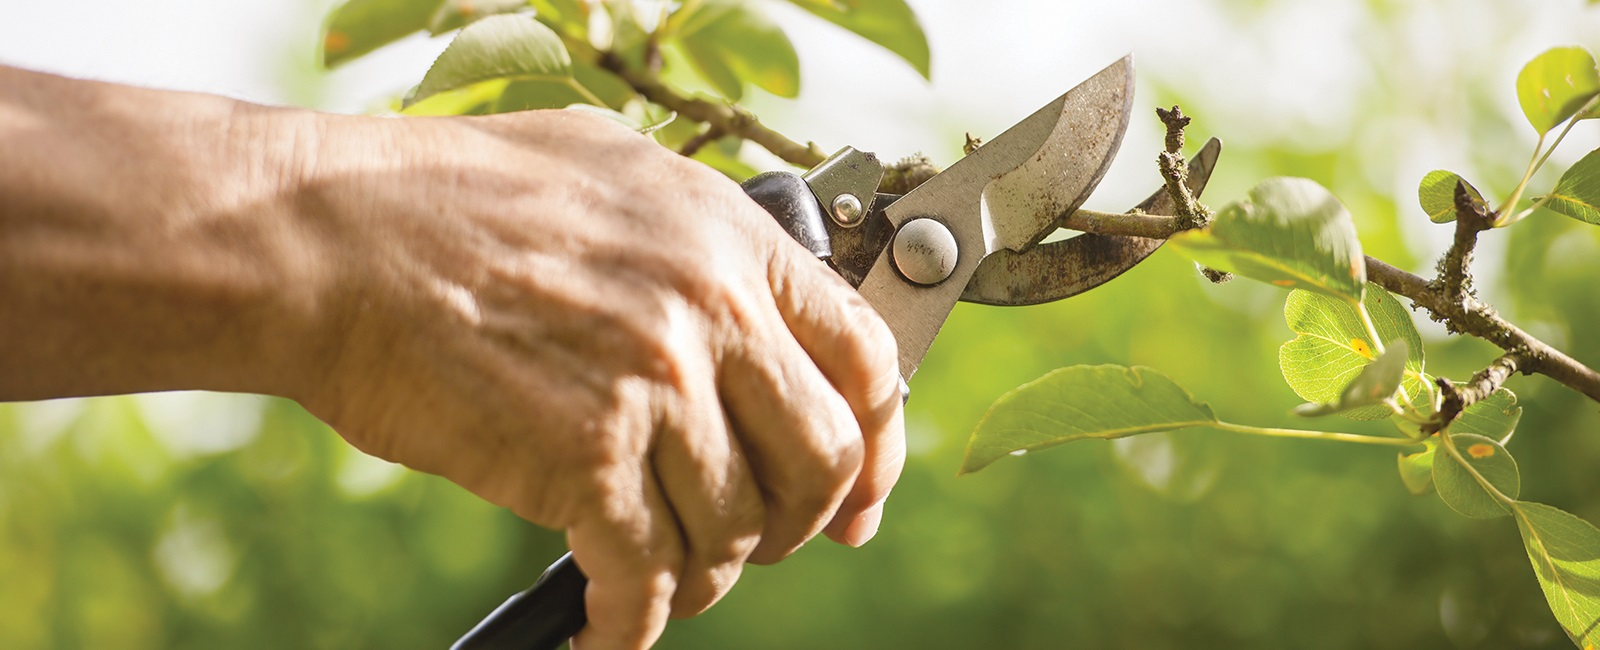 All_Season_Tree_Service: Tree Pruning